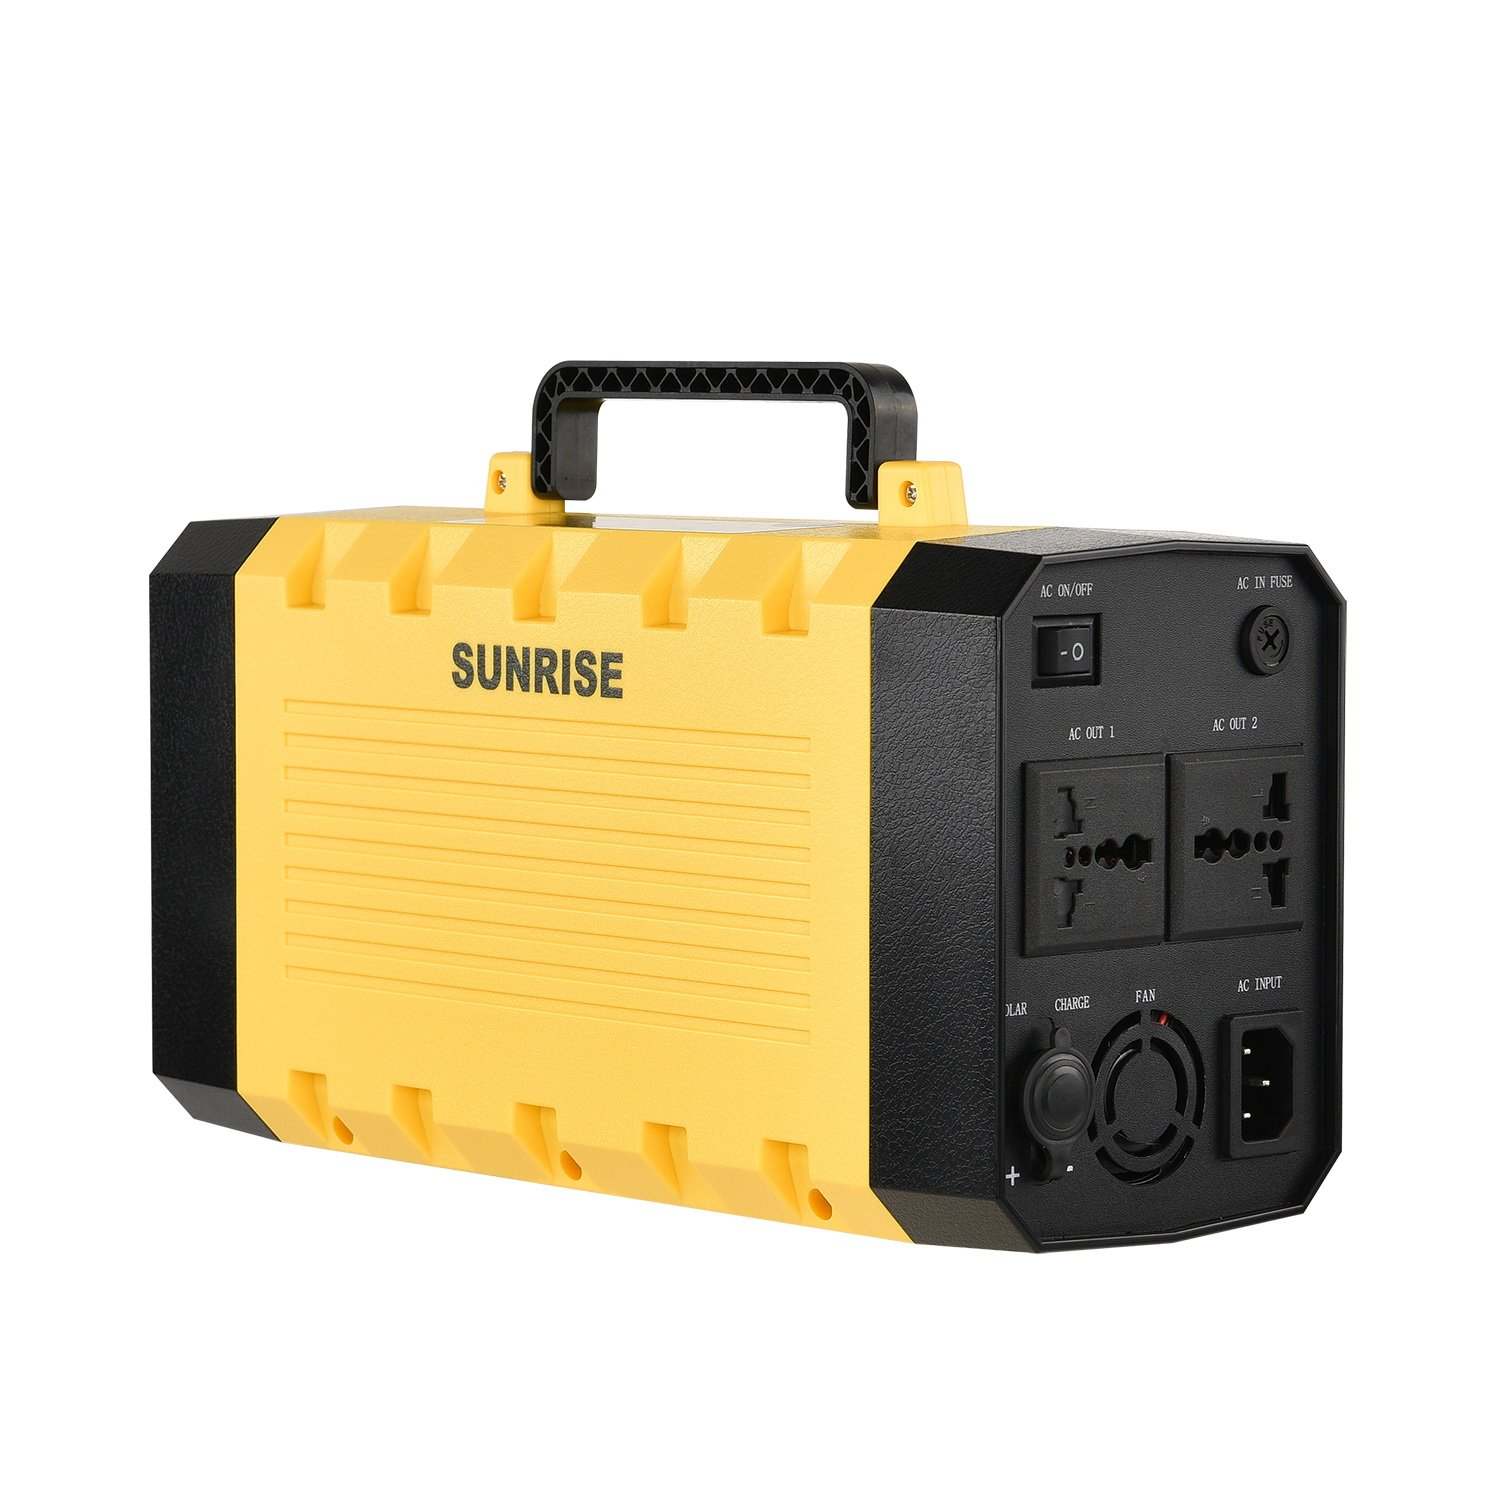 Sunrise PowerStorage, Compact 388Wh / 105,000mAh Portable Outlet, Generator Alternative Rechargeable Power Source with Silent DC/AC Power Inverter, 12V AC & USB Outputs, LED Light